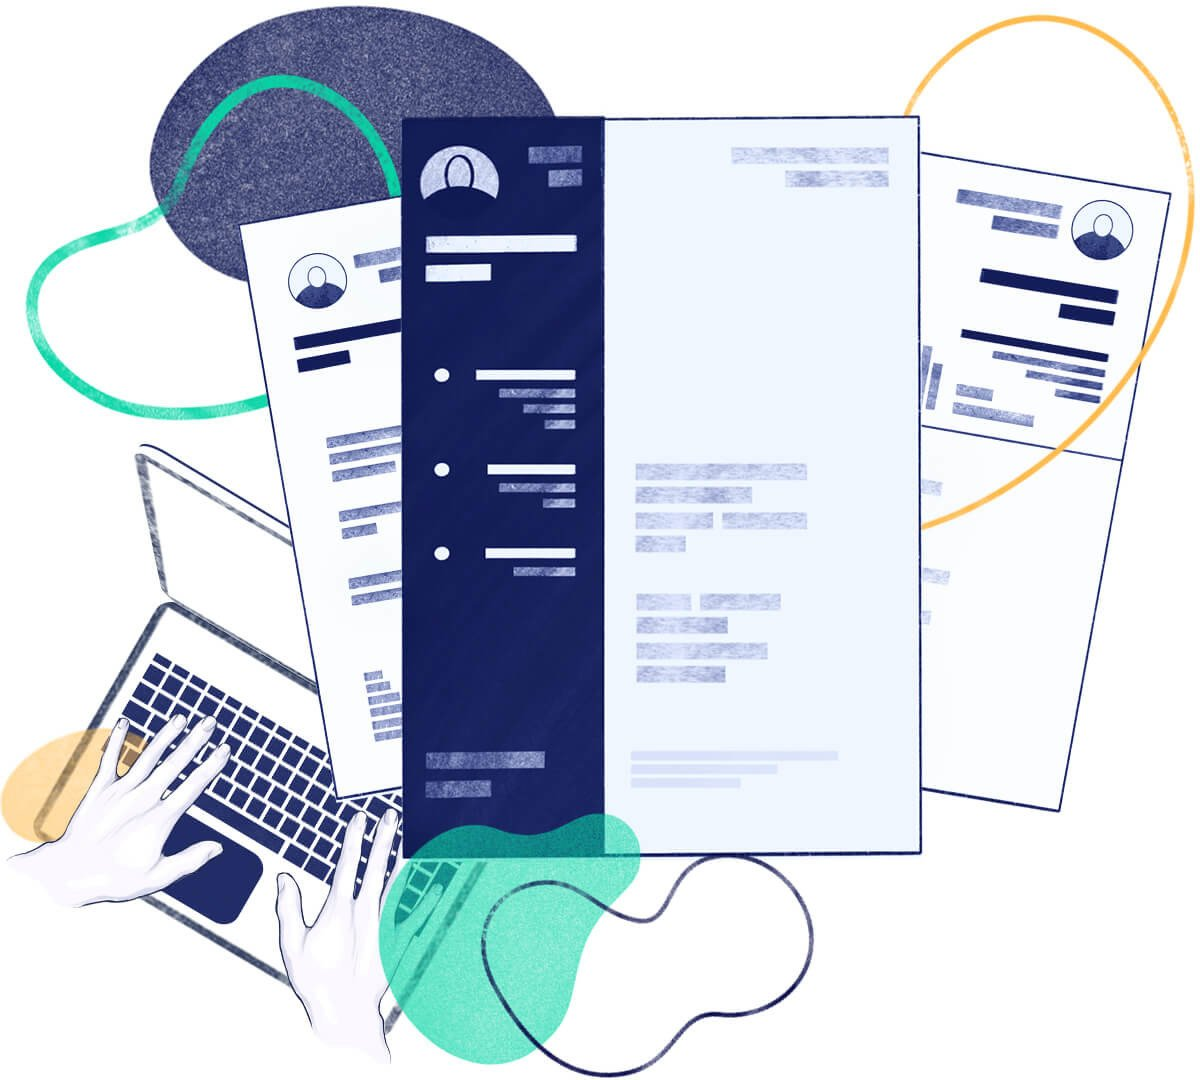 Computer Skills for a Resume in 2021 [Examples of Software to List]